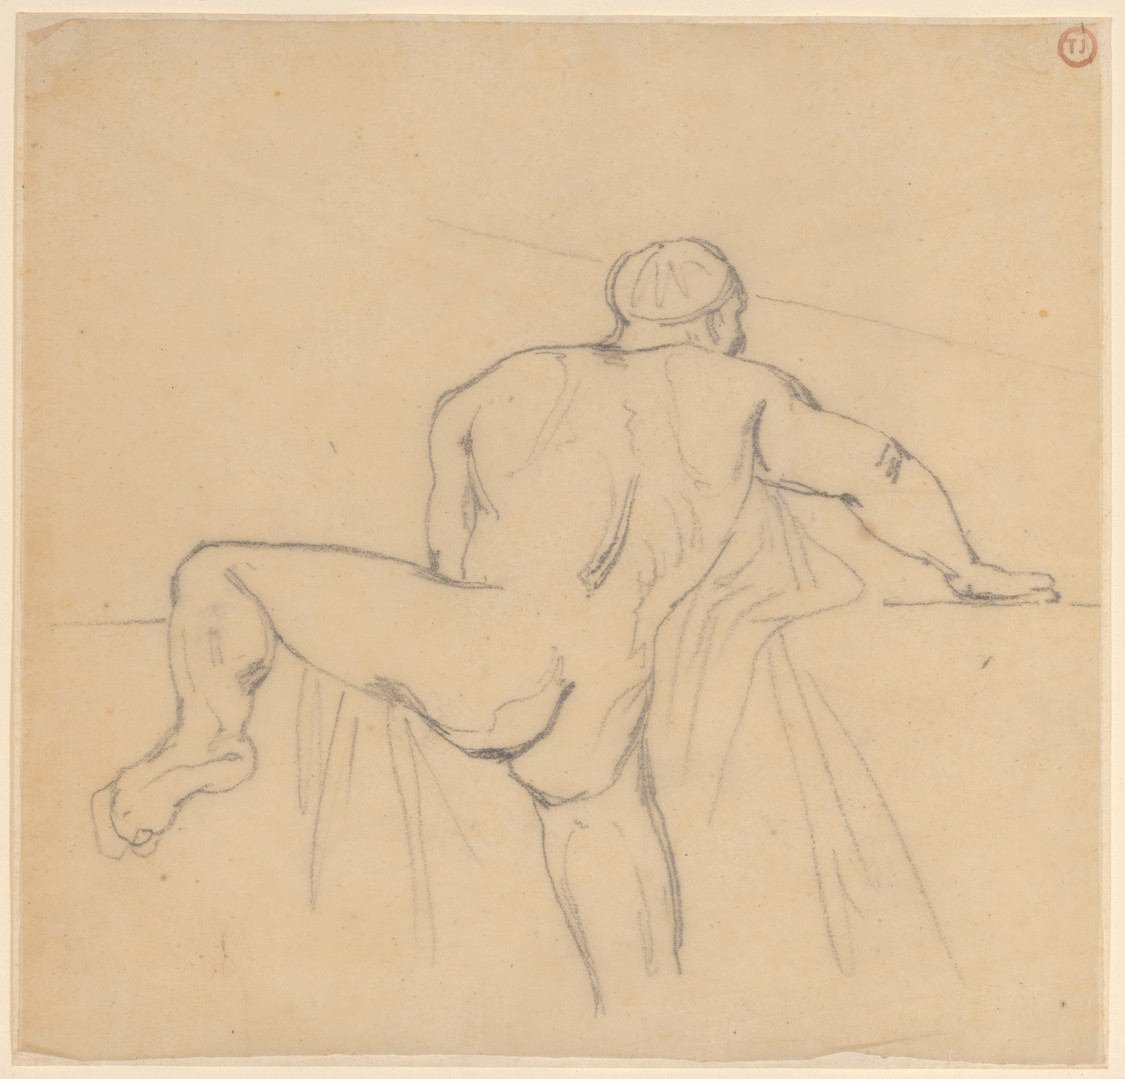 Théodore Géricault (French, 1791–1824) Man Seen from the Back, ca. 1818 Graphite on tracing paper, laid down 7 × 7 in. (17.8 × 17.8 cm), Framed: 12 × 12 in. (30.5 × 30.5 cm) Promised Gift of Michael A. Rubenstein, in celebration of the Museum's 150th Anniversary